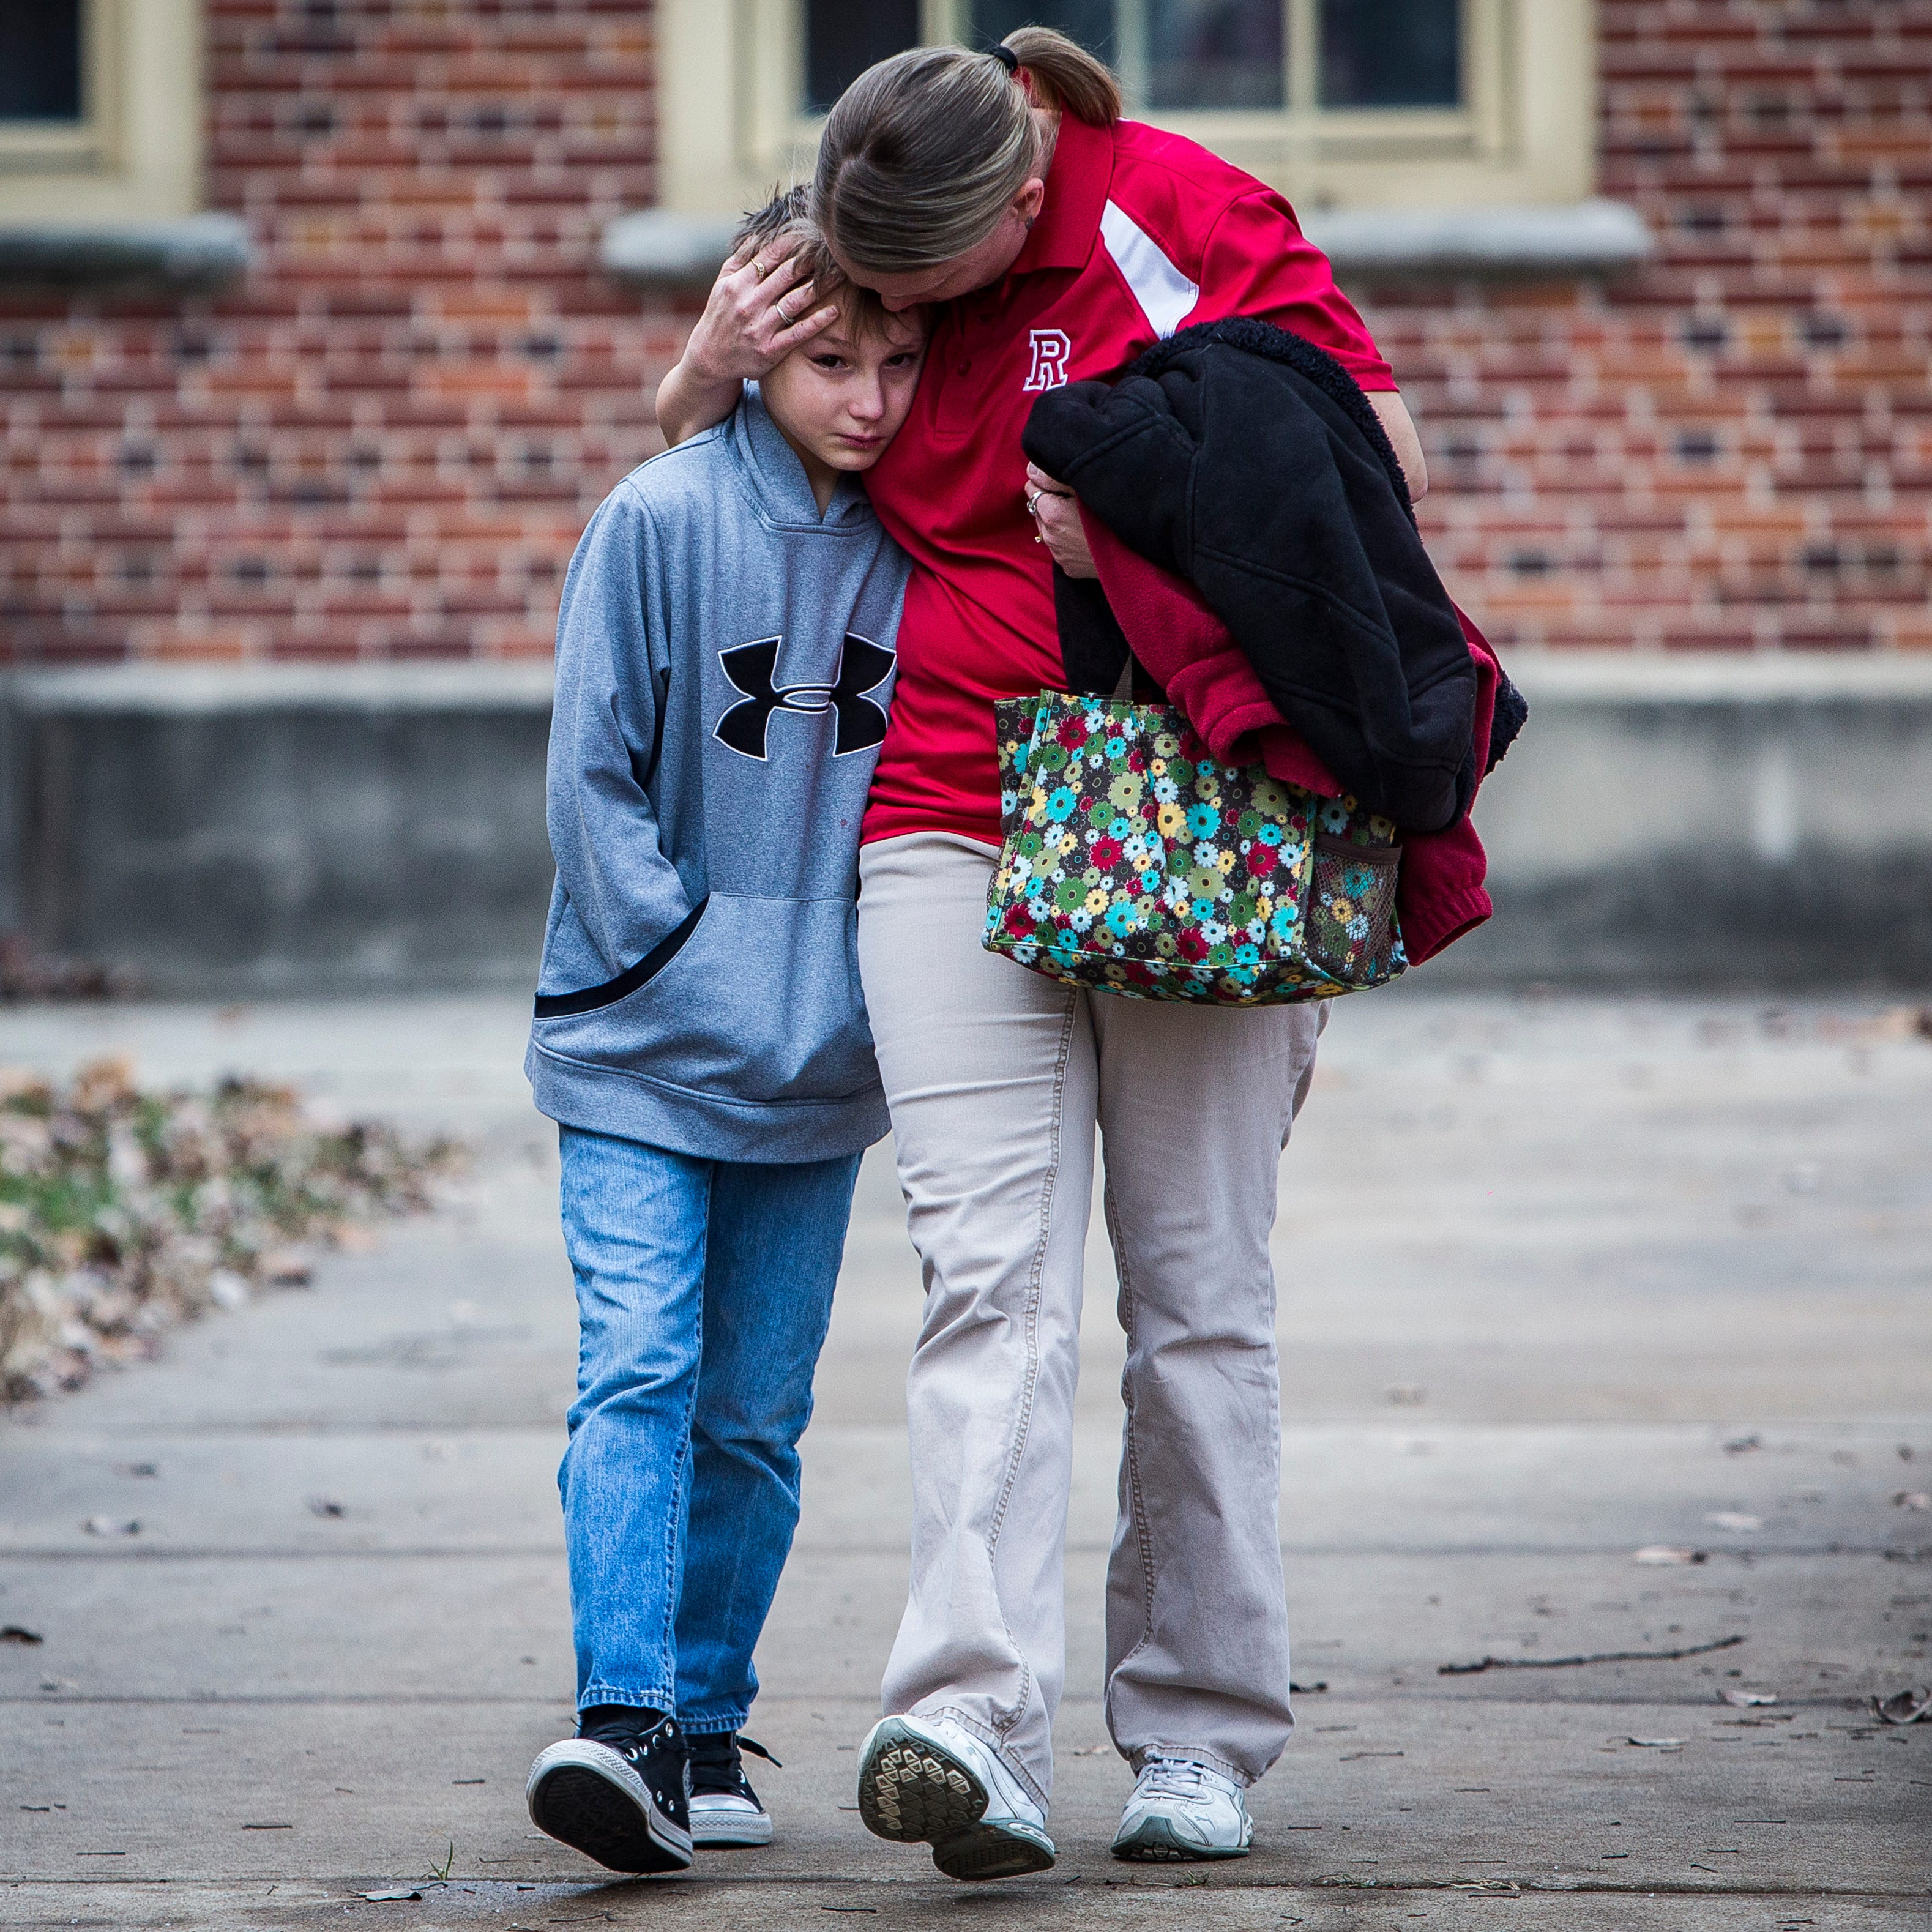 'I'm going to hug her extra tight': Parents react to Richmond school shooting